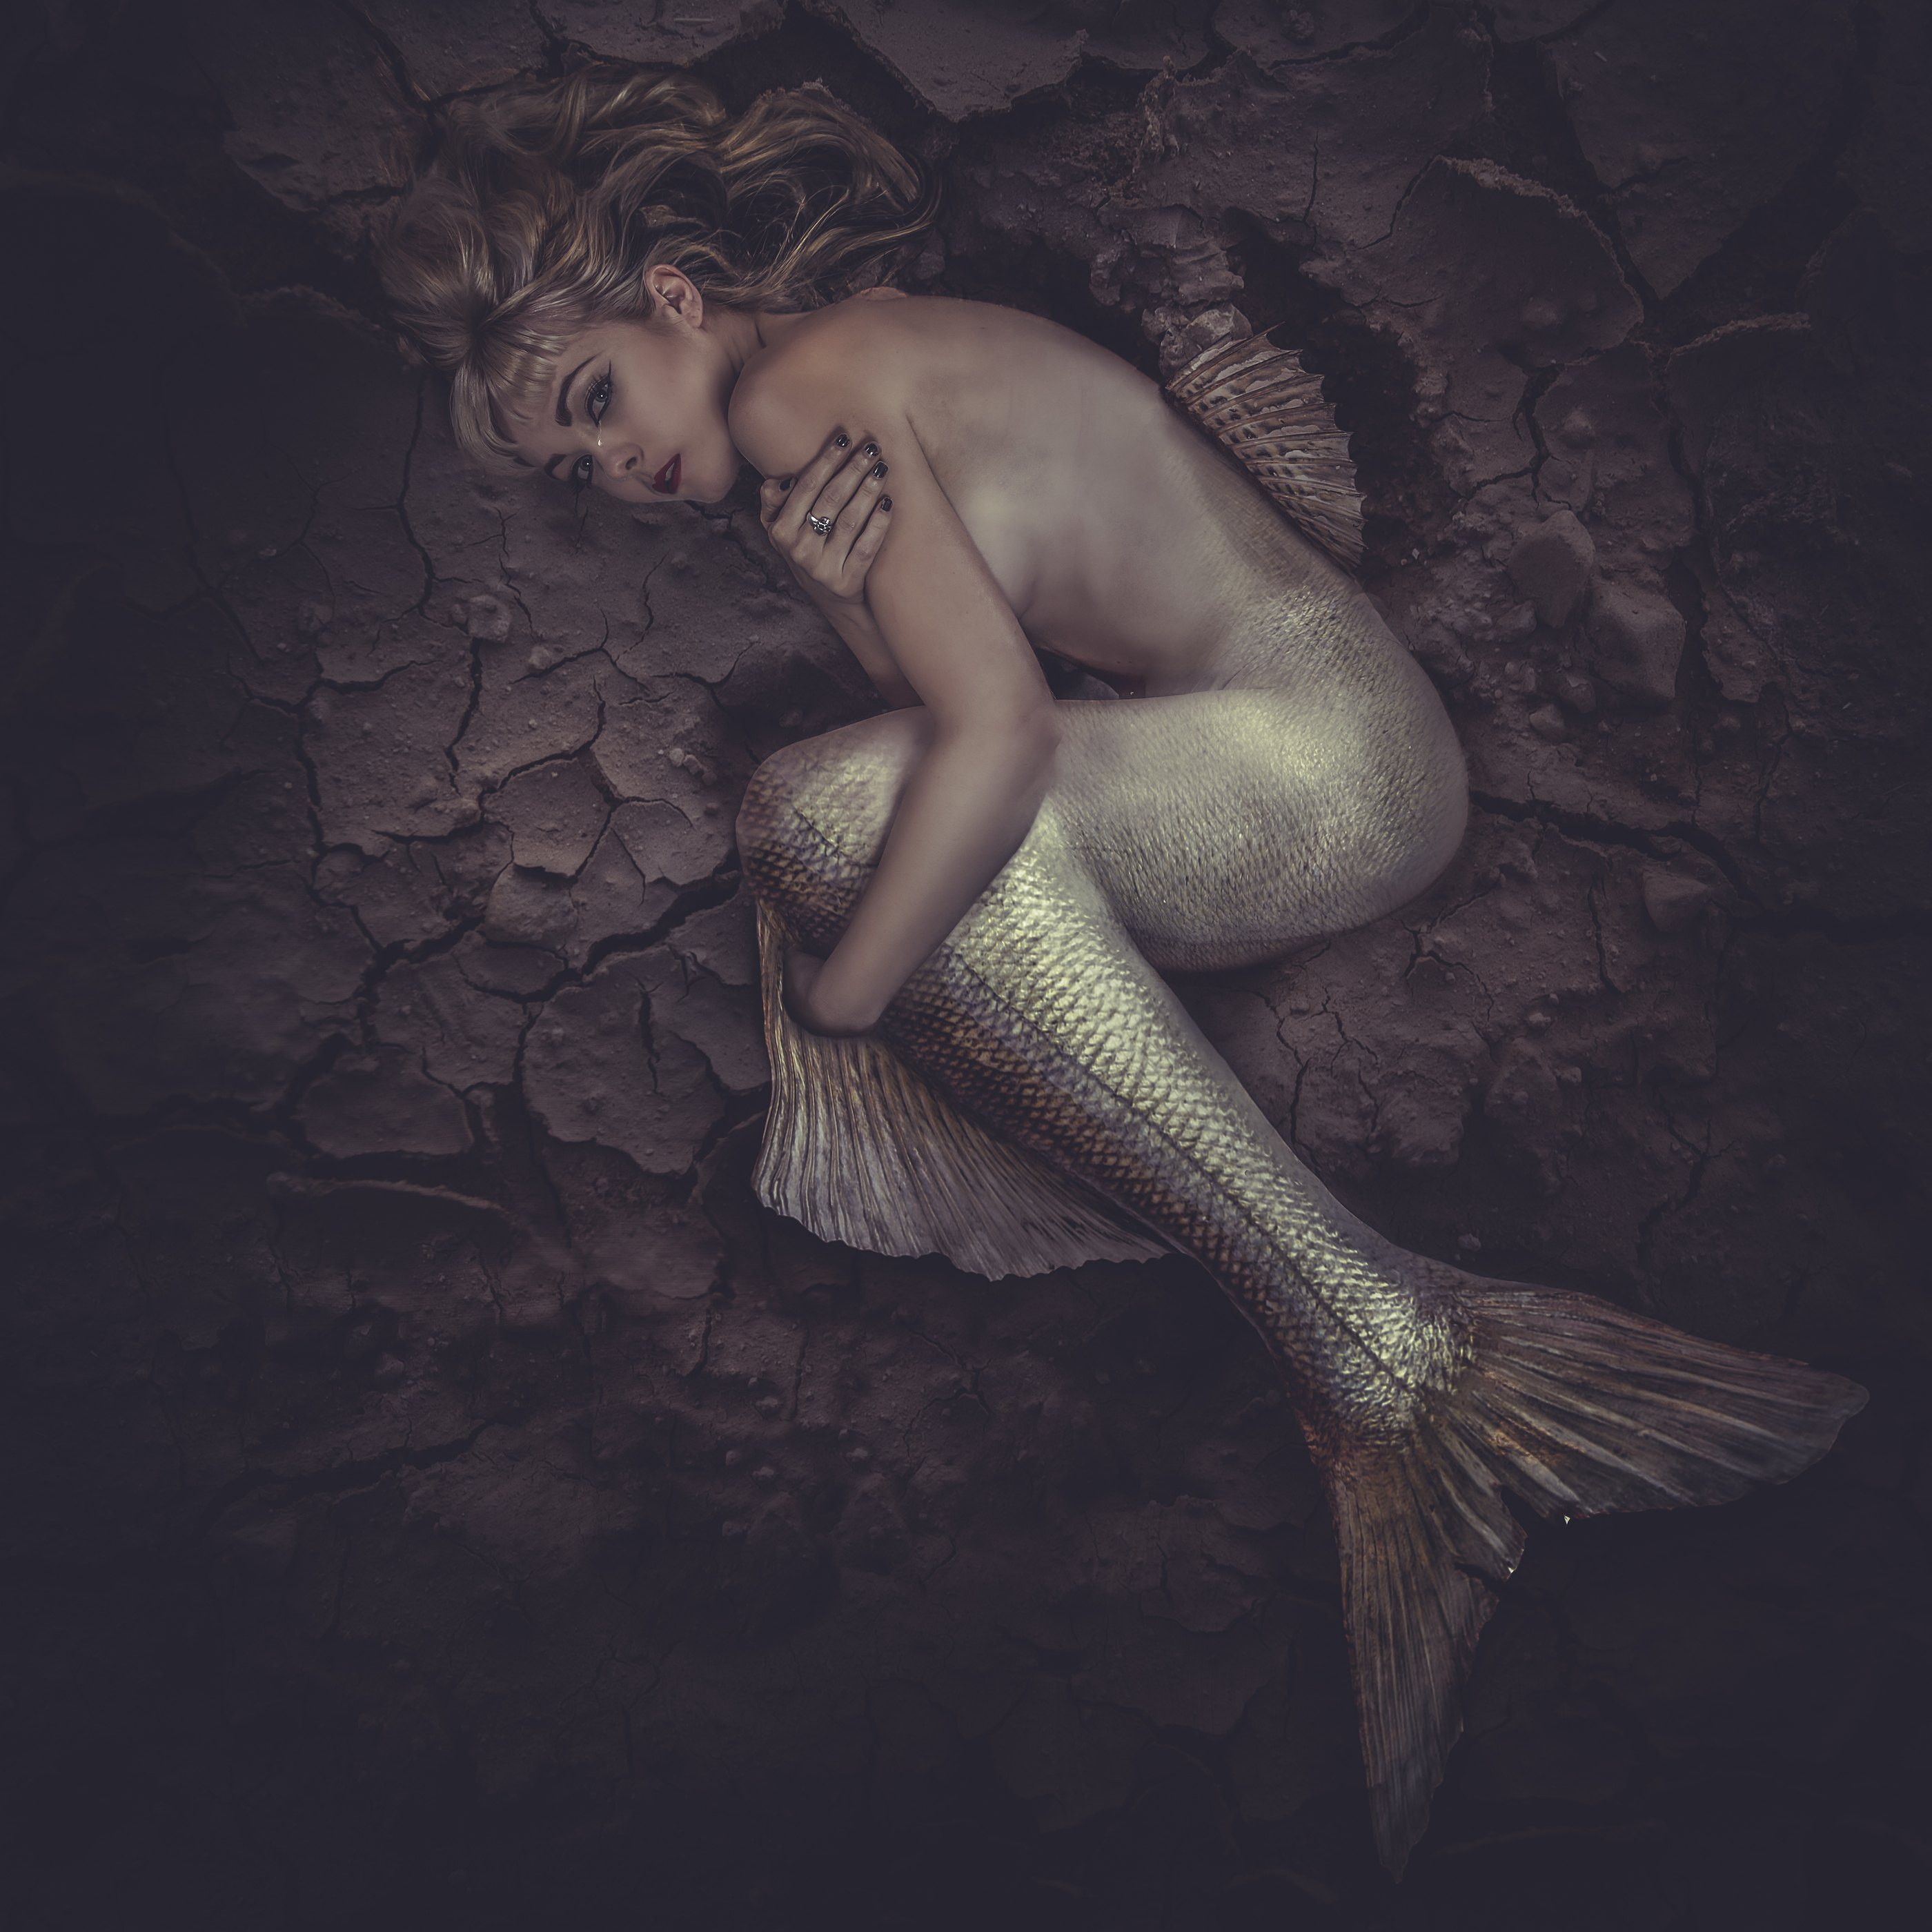 mermaid trapped in a sea of �?�¢??�?�¢??mud, c